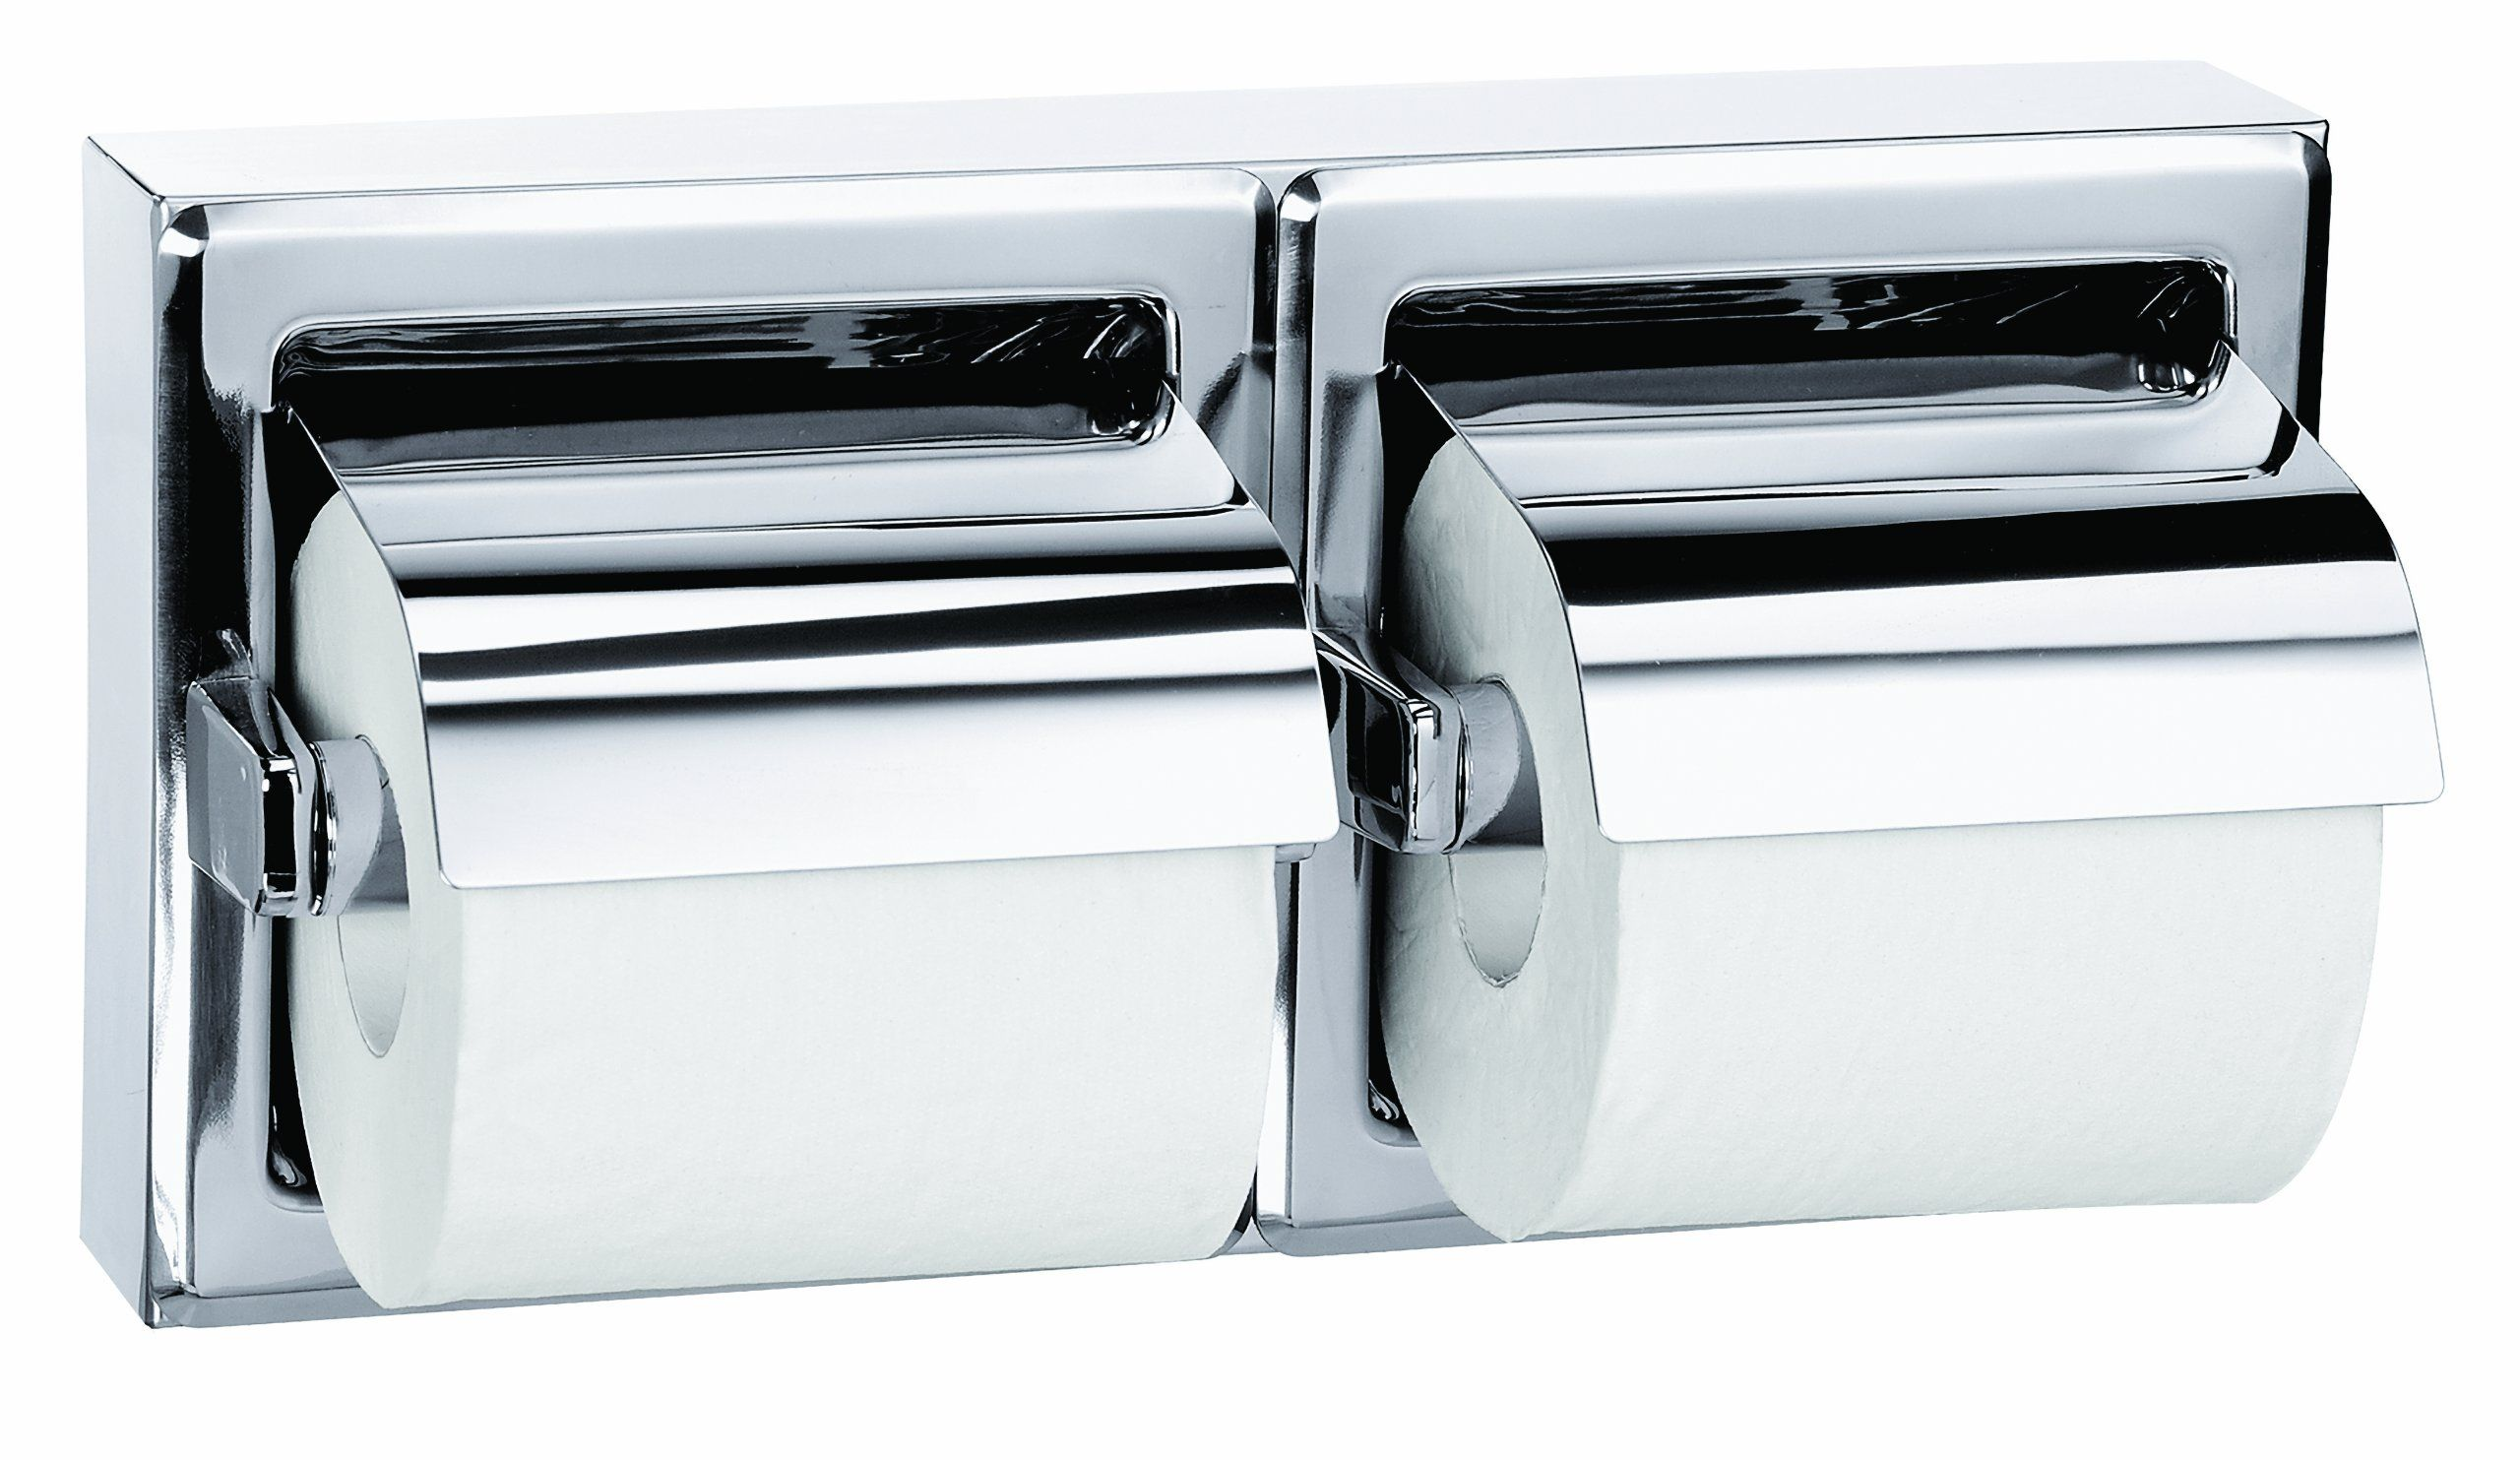 Bradley 5126 000000 Stainless Steel Surface Mounted Hinged Hood Dual Roll Toilet Tissue Dispenser 12 5 8 With Images Toilet Paper Holder Toilet Paper Dispenser Dispenser